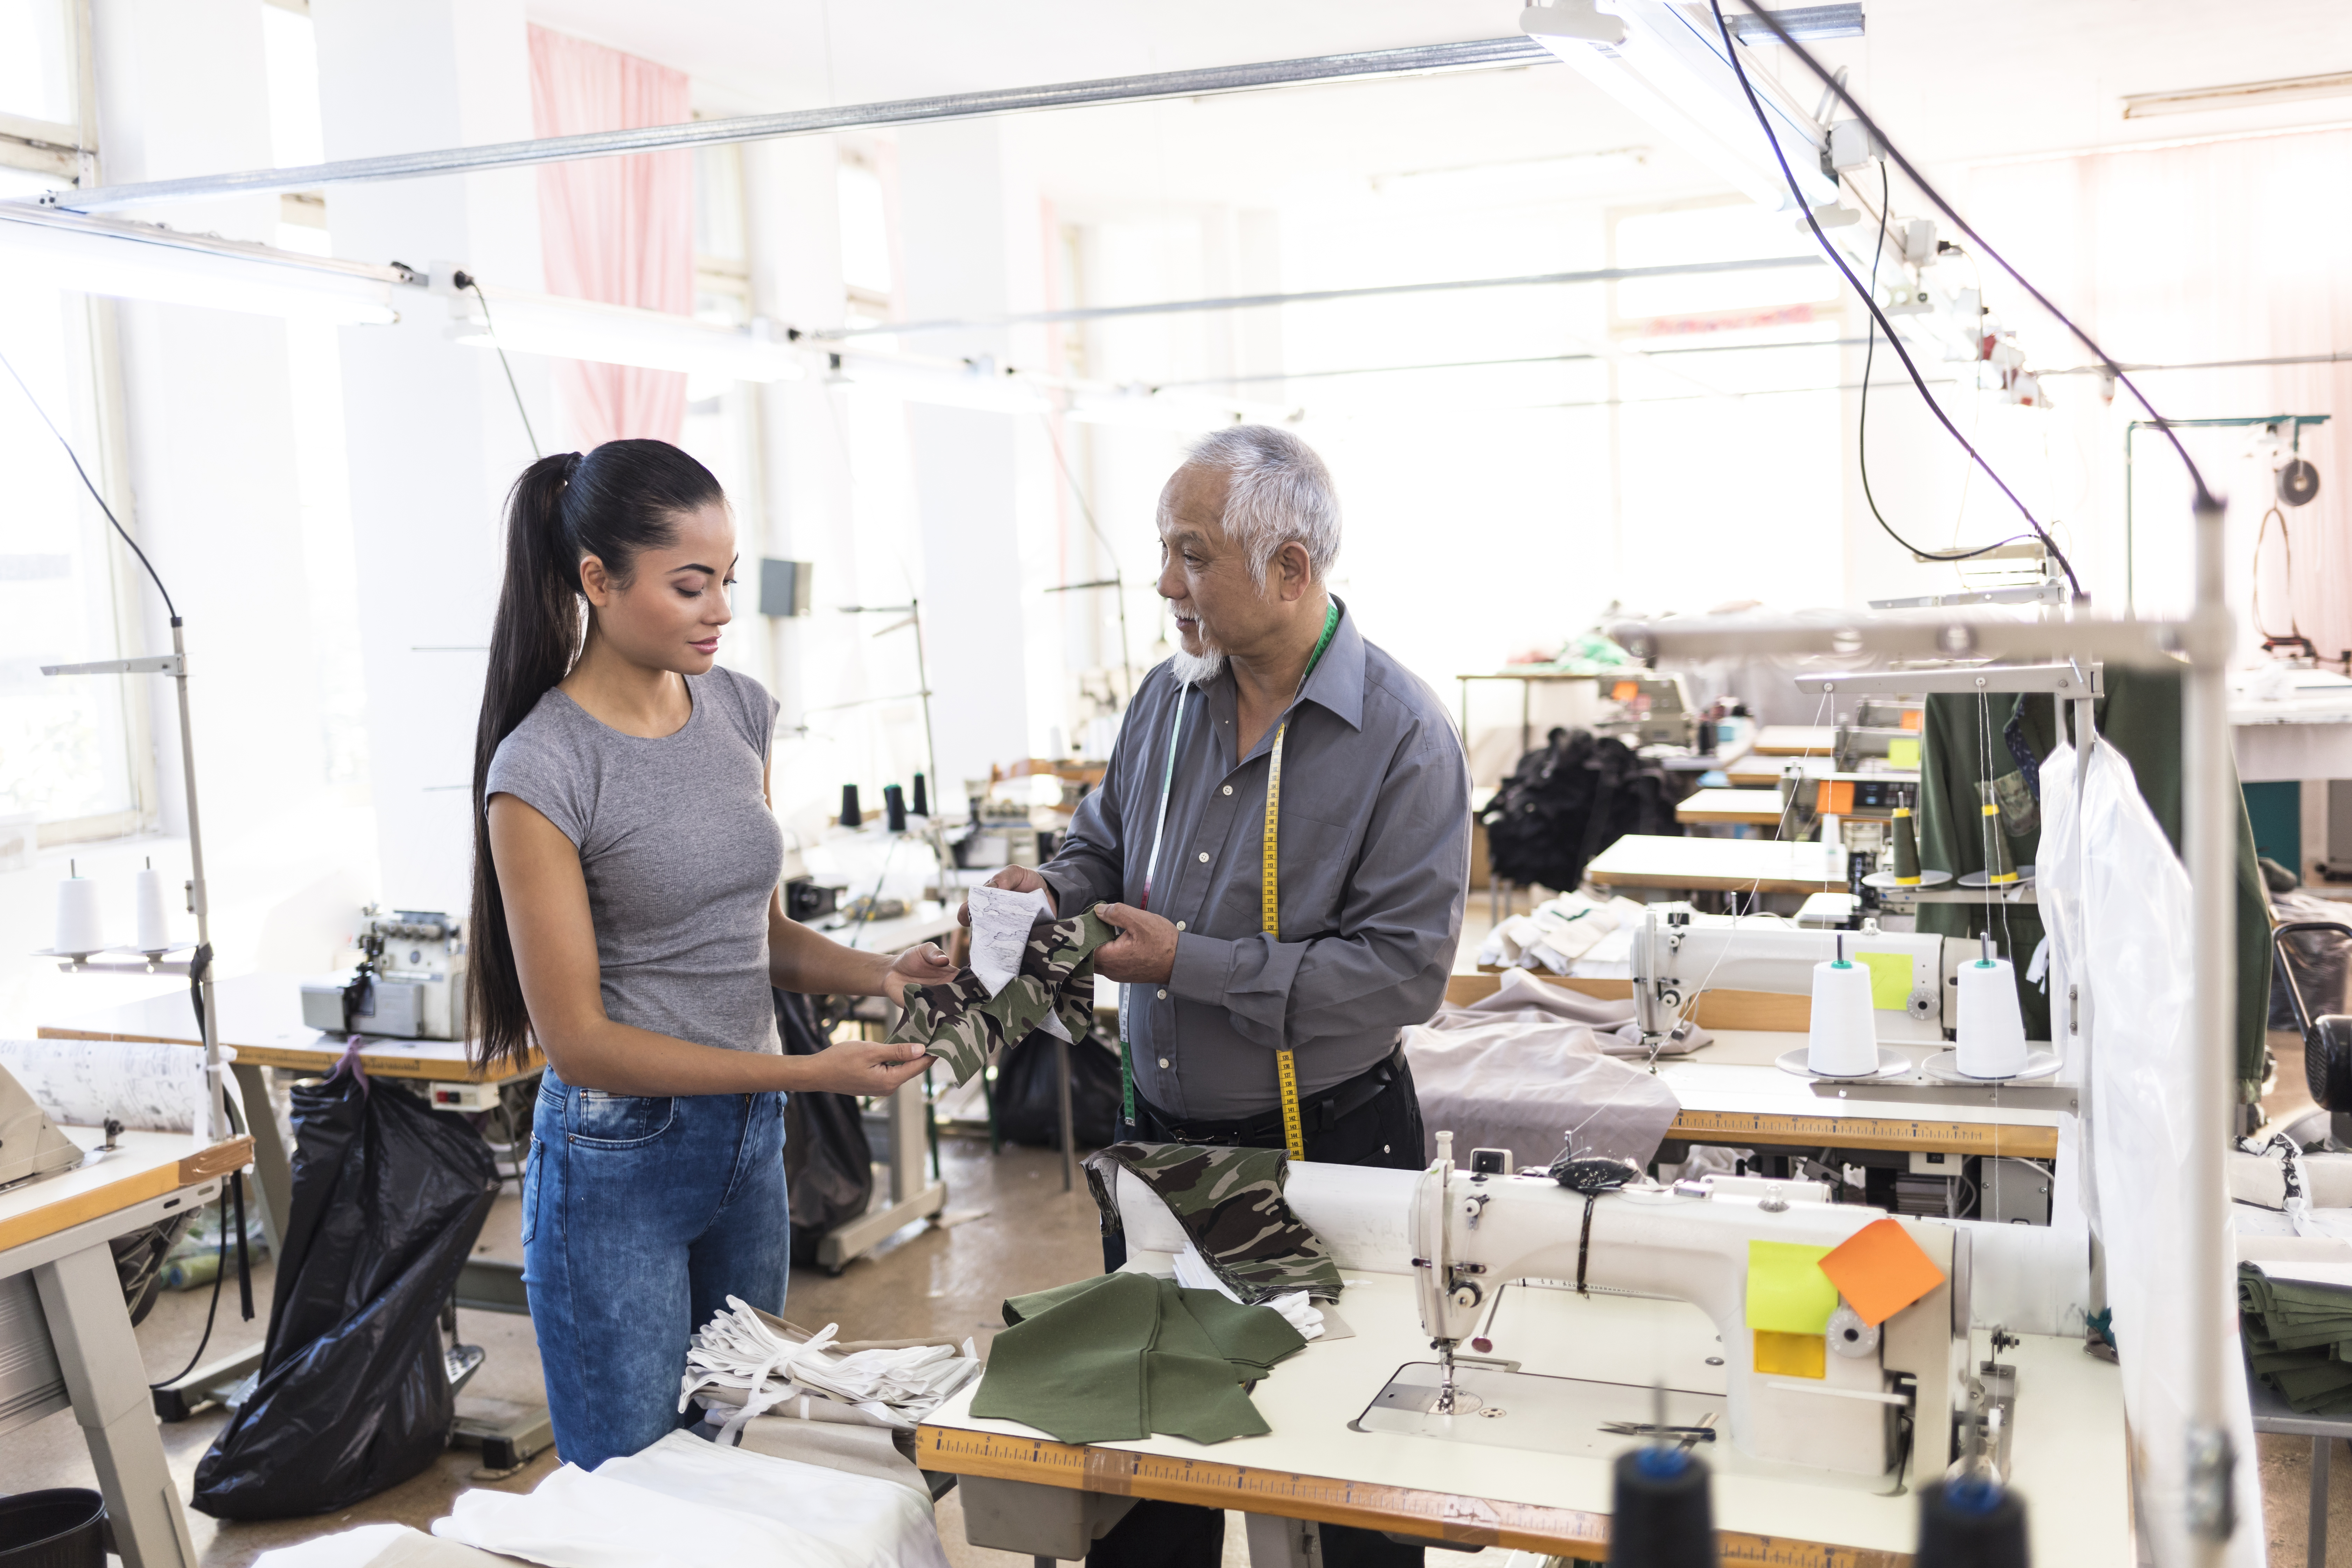 How to Start a Small Business for Clothing | Chron com